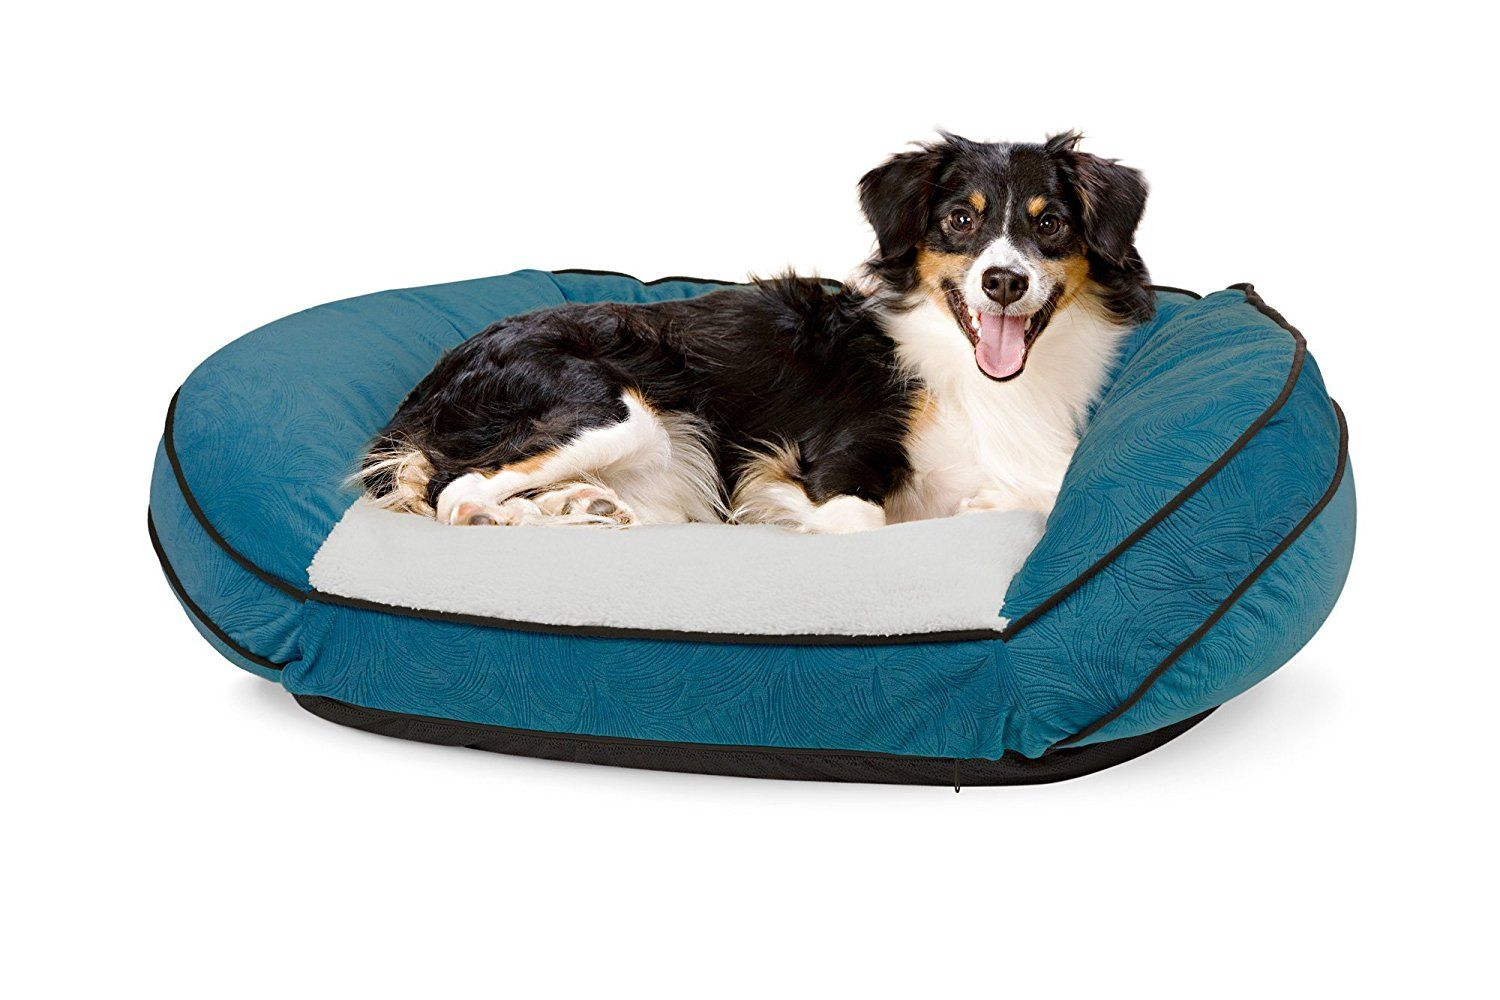 Precious Tails Teal Orthopedic Pet Bed Cresent Curved Bolster Comfy Baby Memory Foam Lounger Cuddler Sofa Couch With Sherpa And Center Seat 40x29x115 Hurry